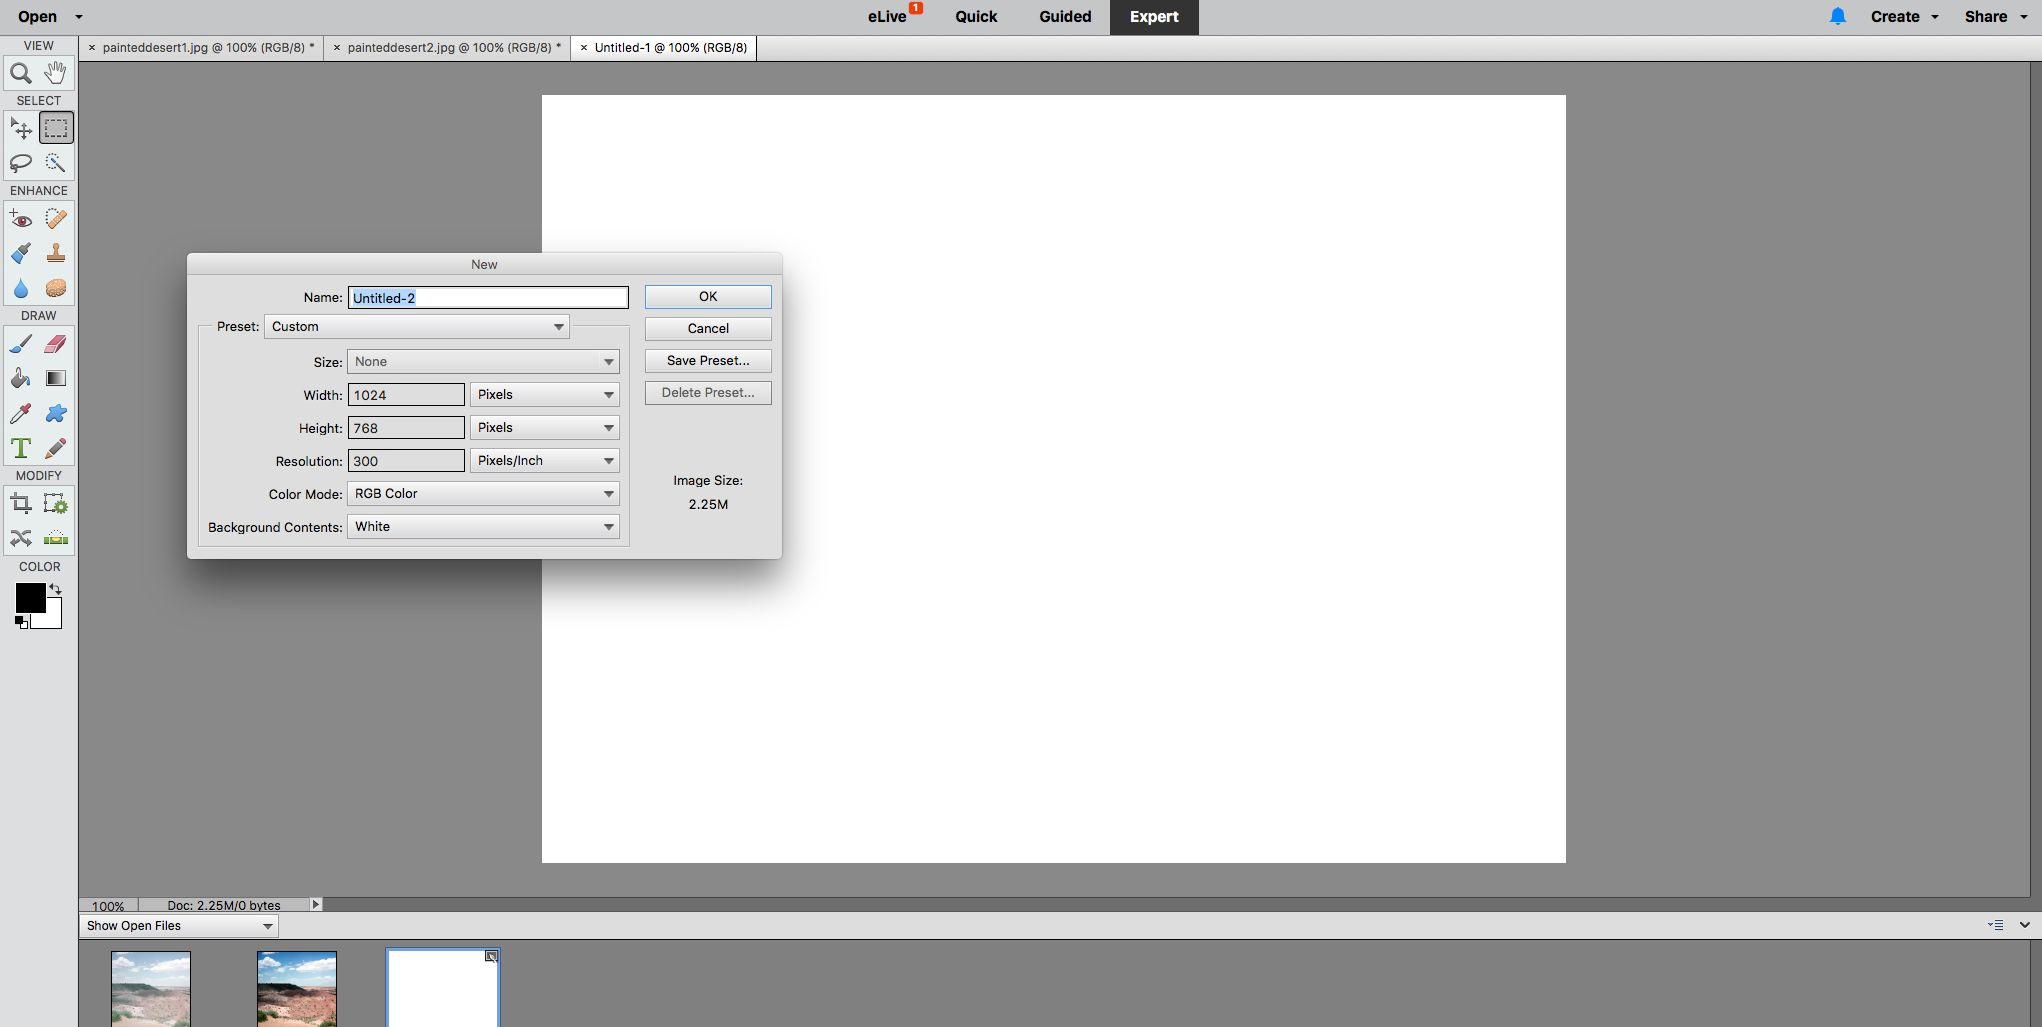 Creating a new blank document in Adobe Element